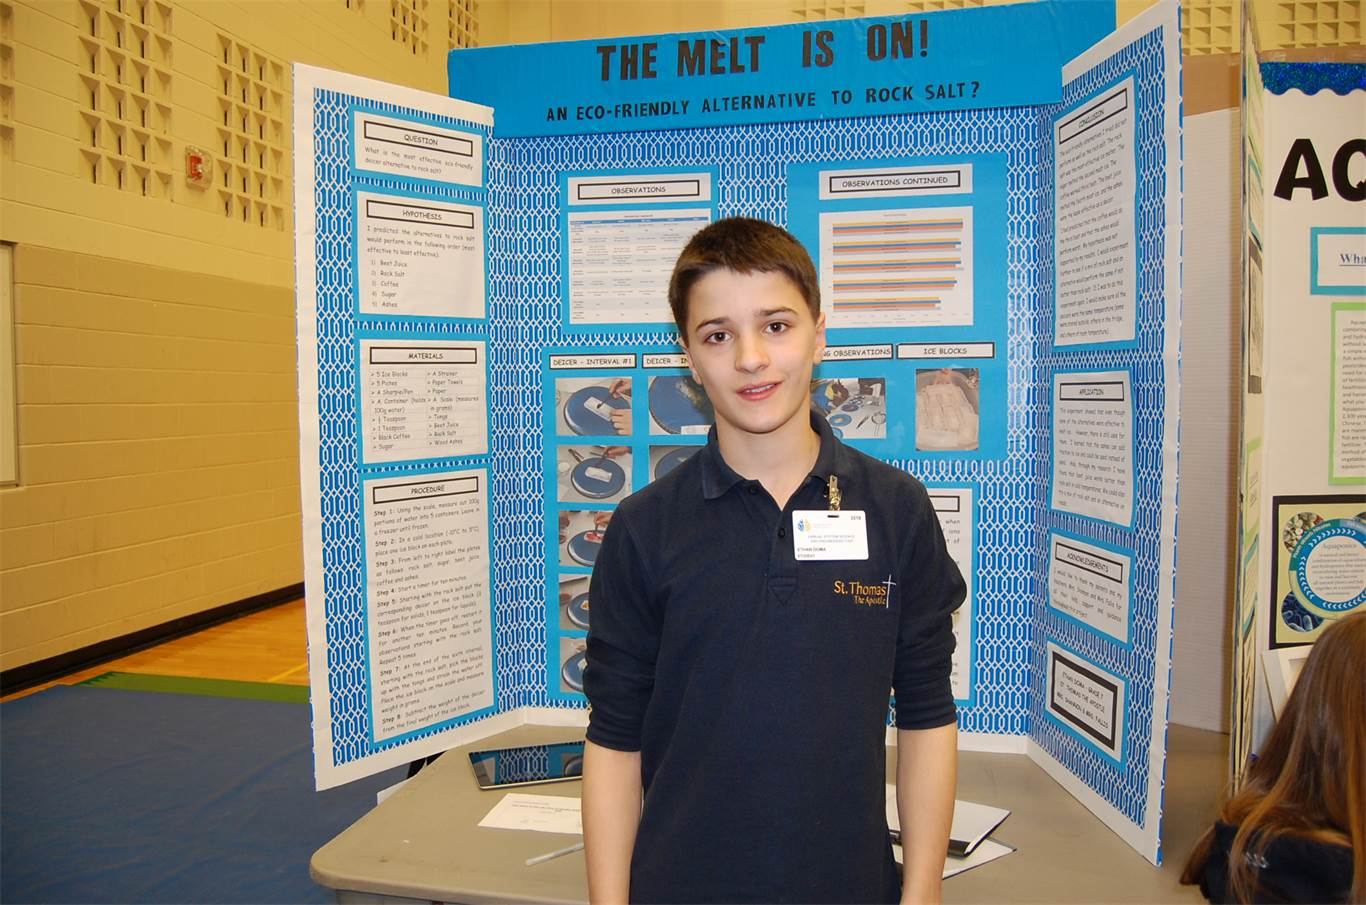 After seeing the effects of salt water on plants in his Grade 5 science project, Ethan Doma started to reflect on what salt water does to roads. After trying different substances to melt snow, including sugar, beet juice, coffee and ashes, Ethan -- now in Grade 7 at St. Thomas the Apostle-- found that while they don't work as well as salt water, the solution might be to